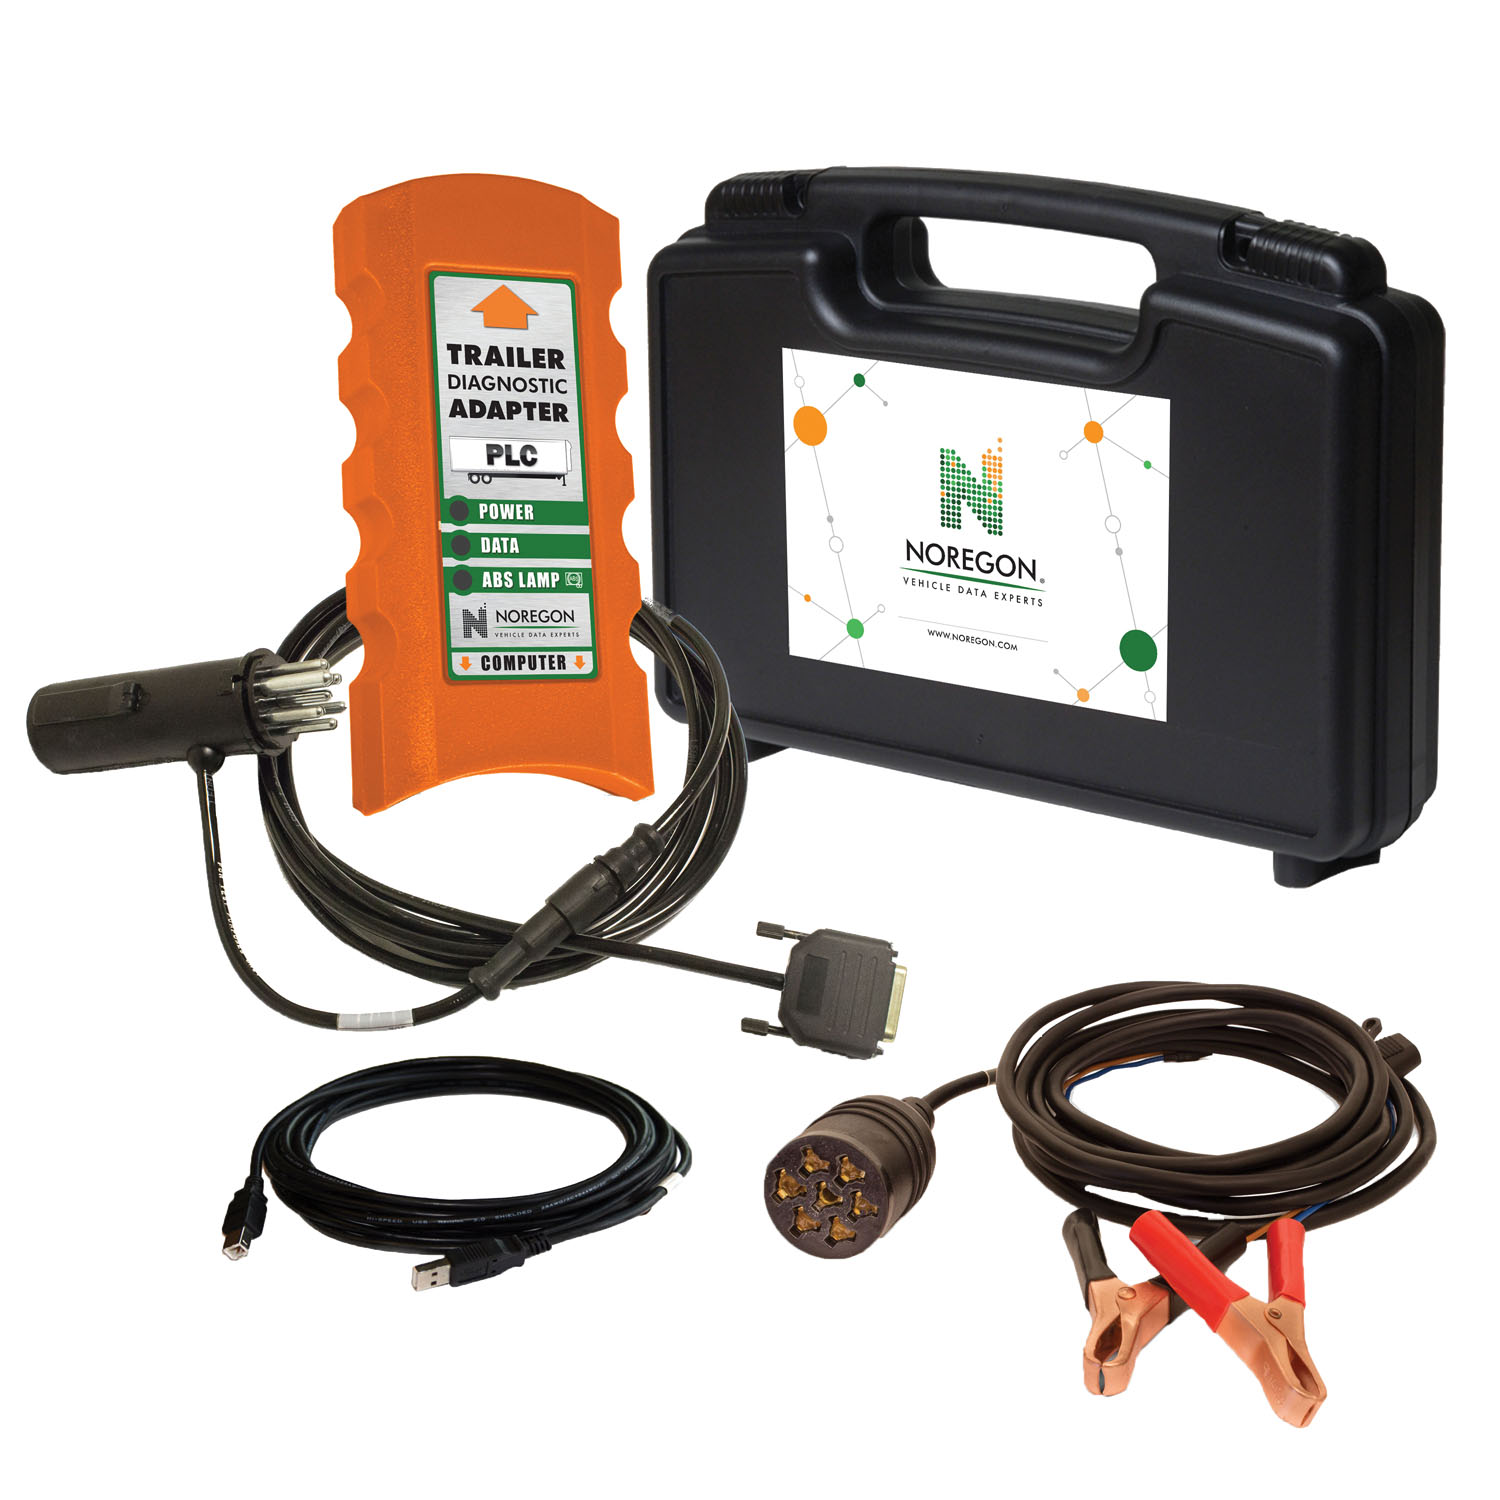 Noregon Noregon Trailer Diagnostic Adapter Kit w/ Power Supply Cable